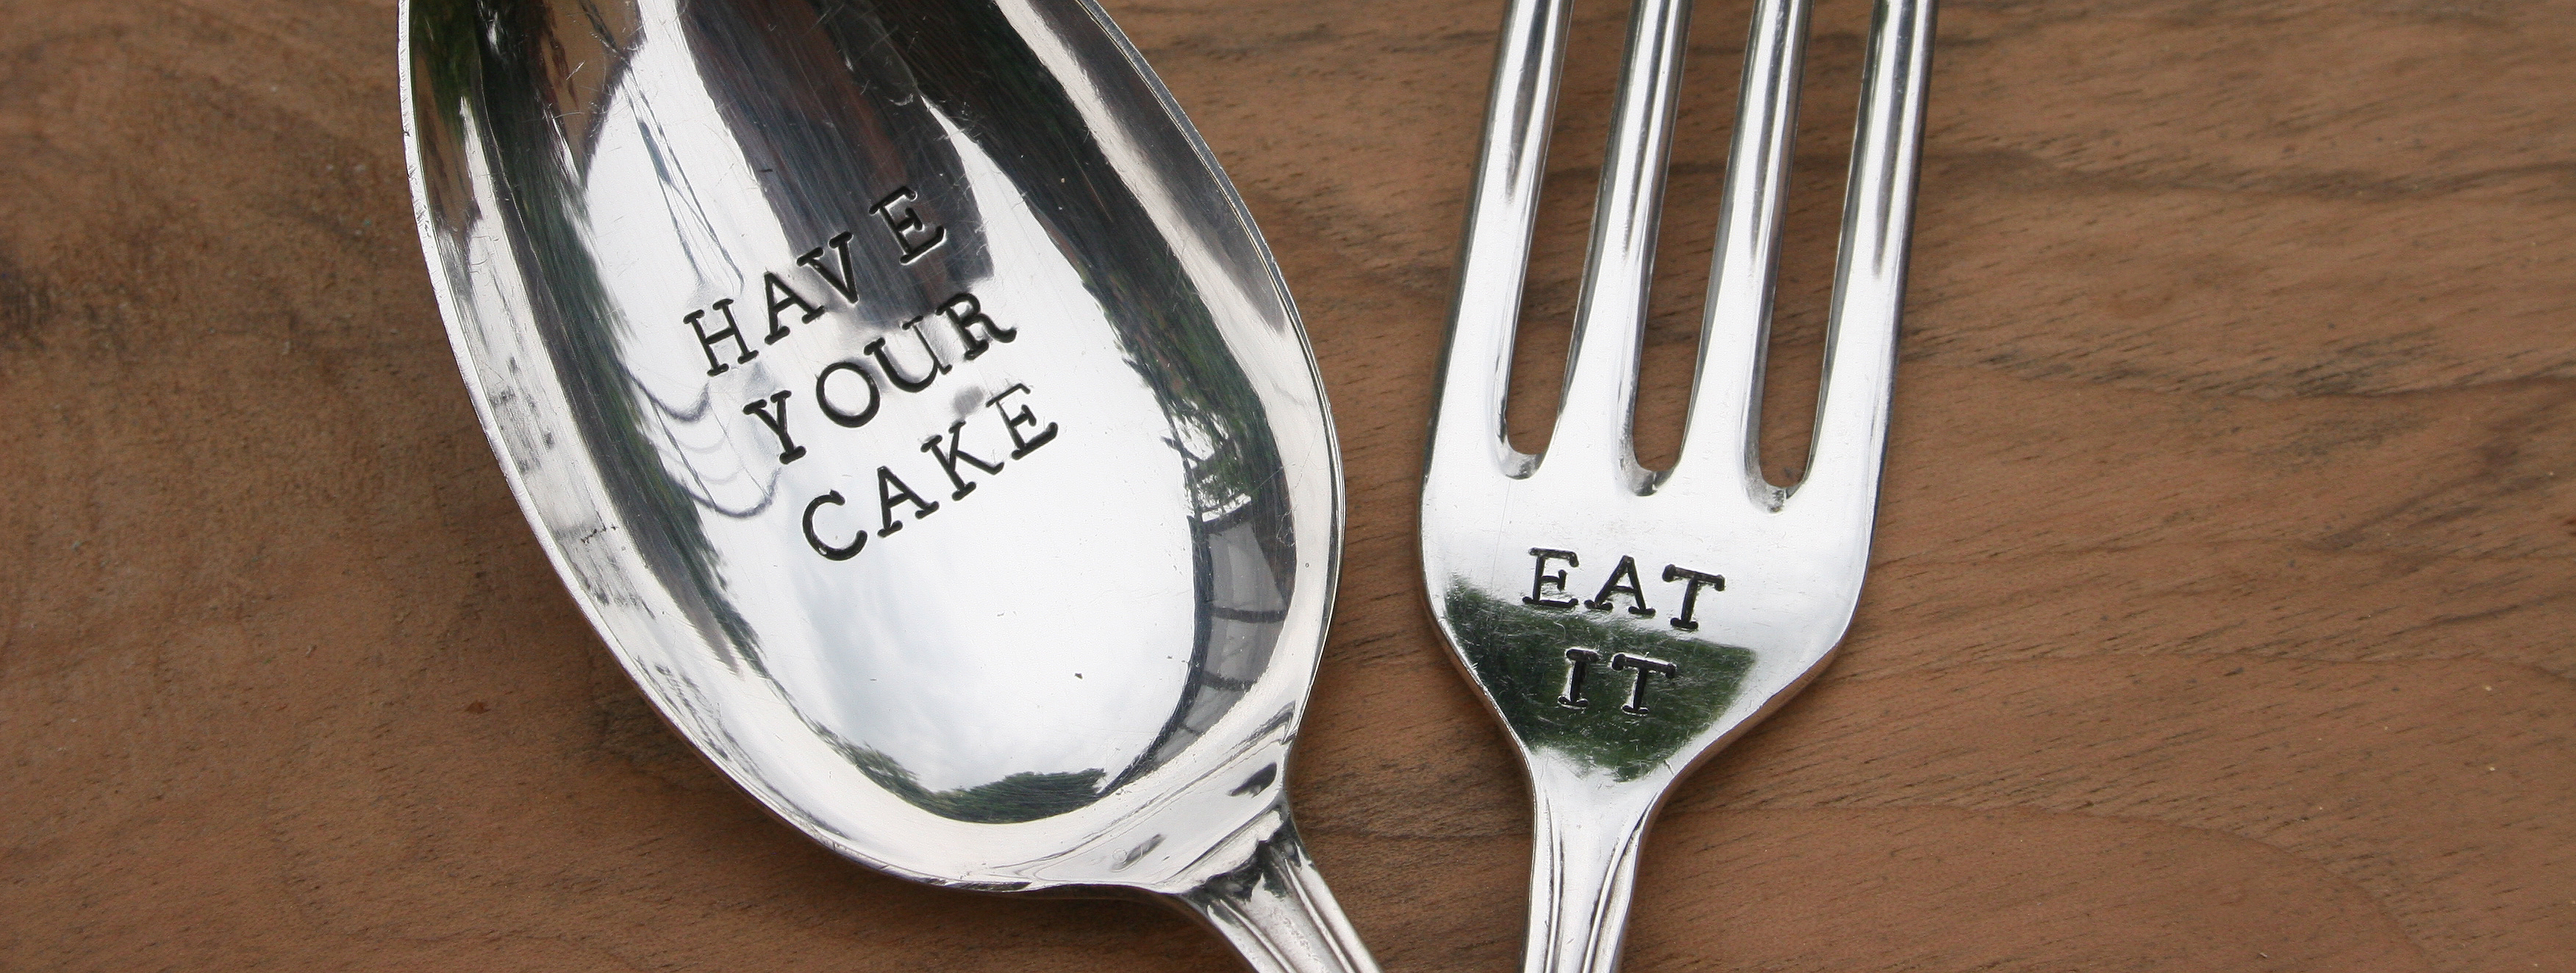 Have your cake and eat it stamped on spoon and fork